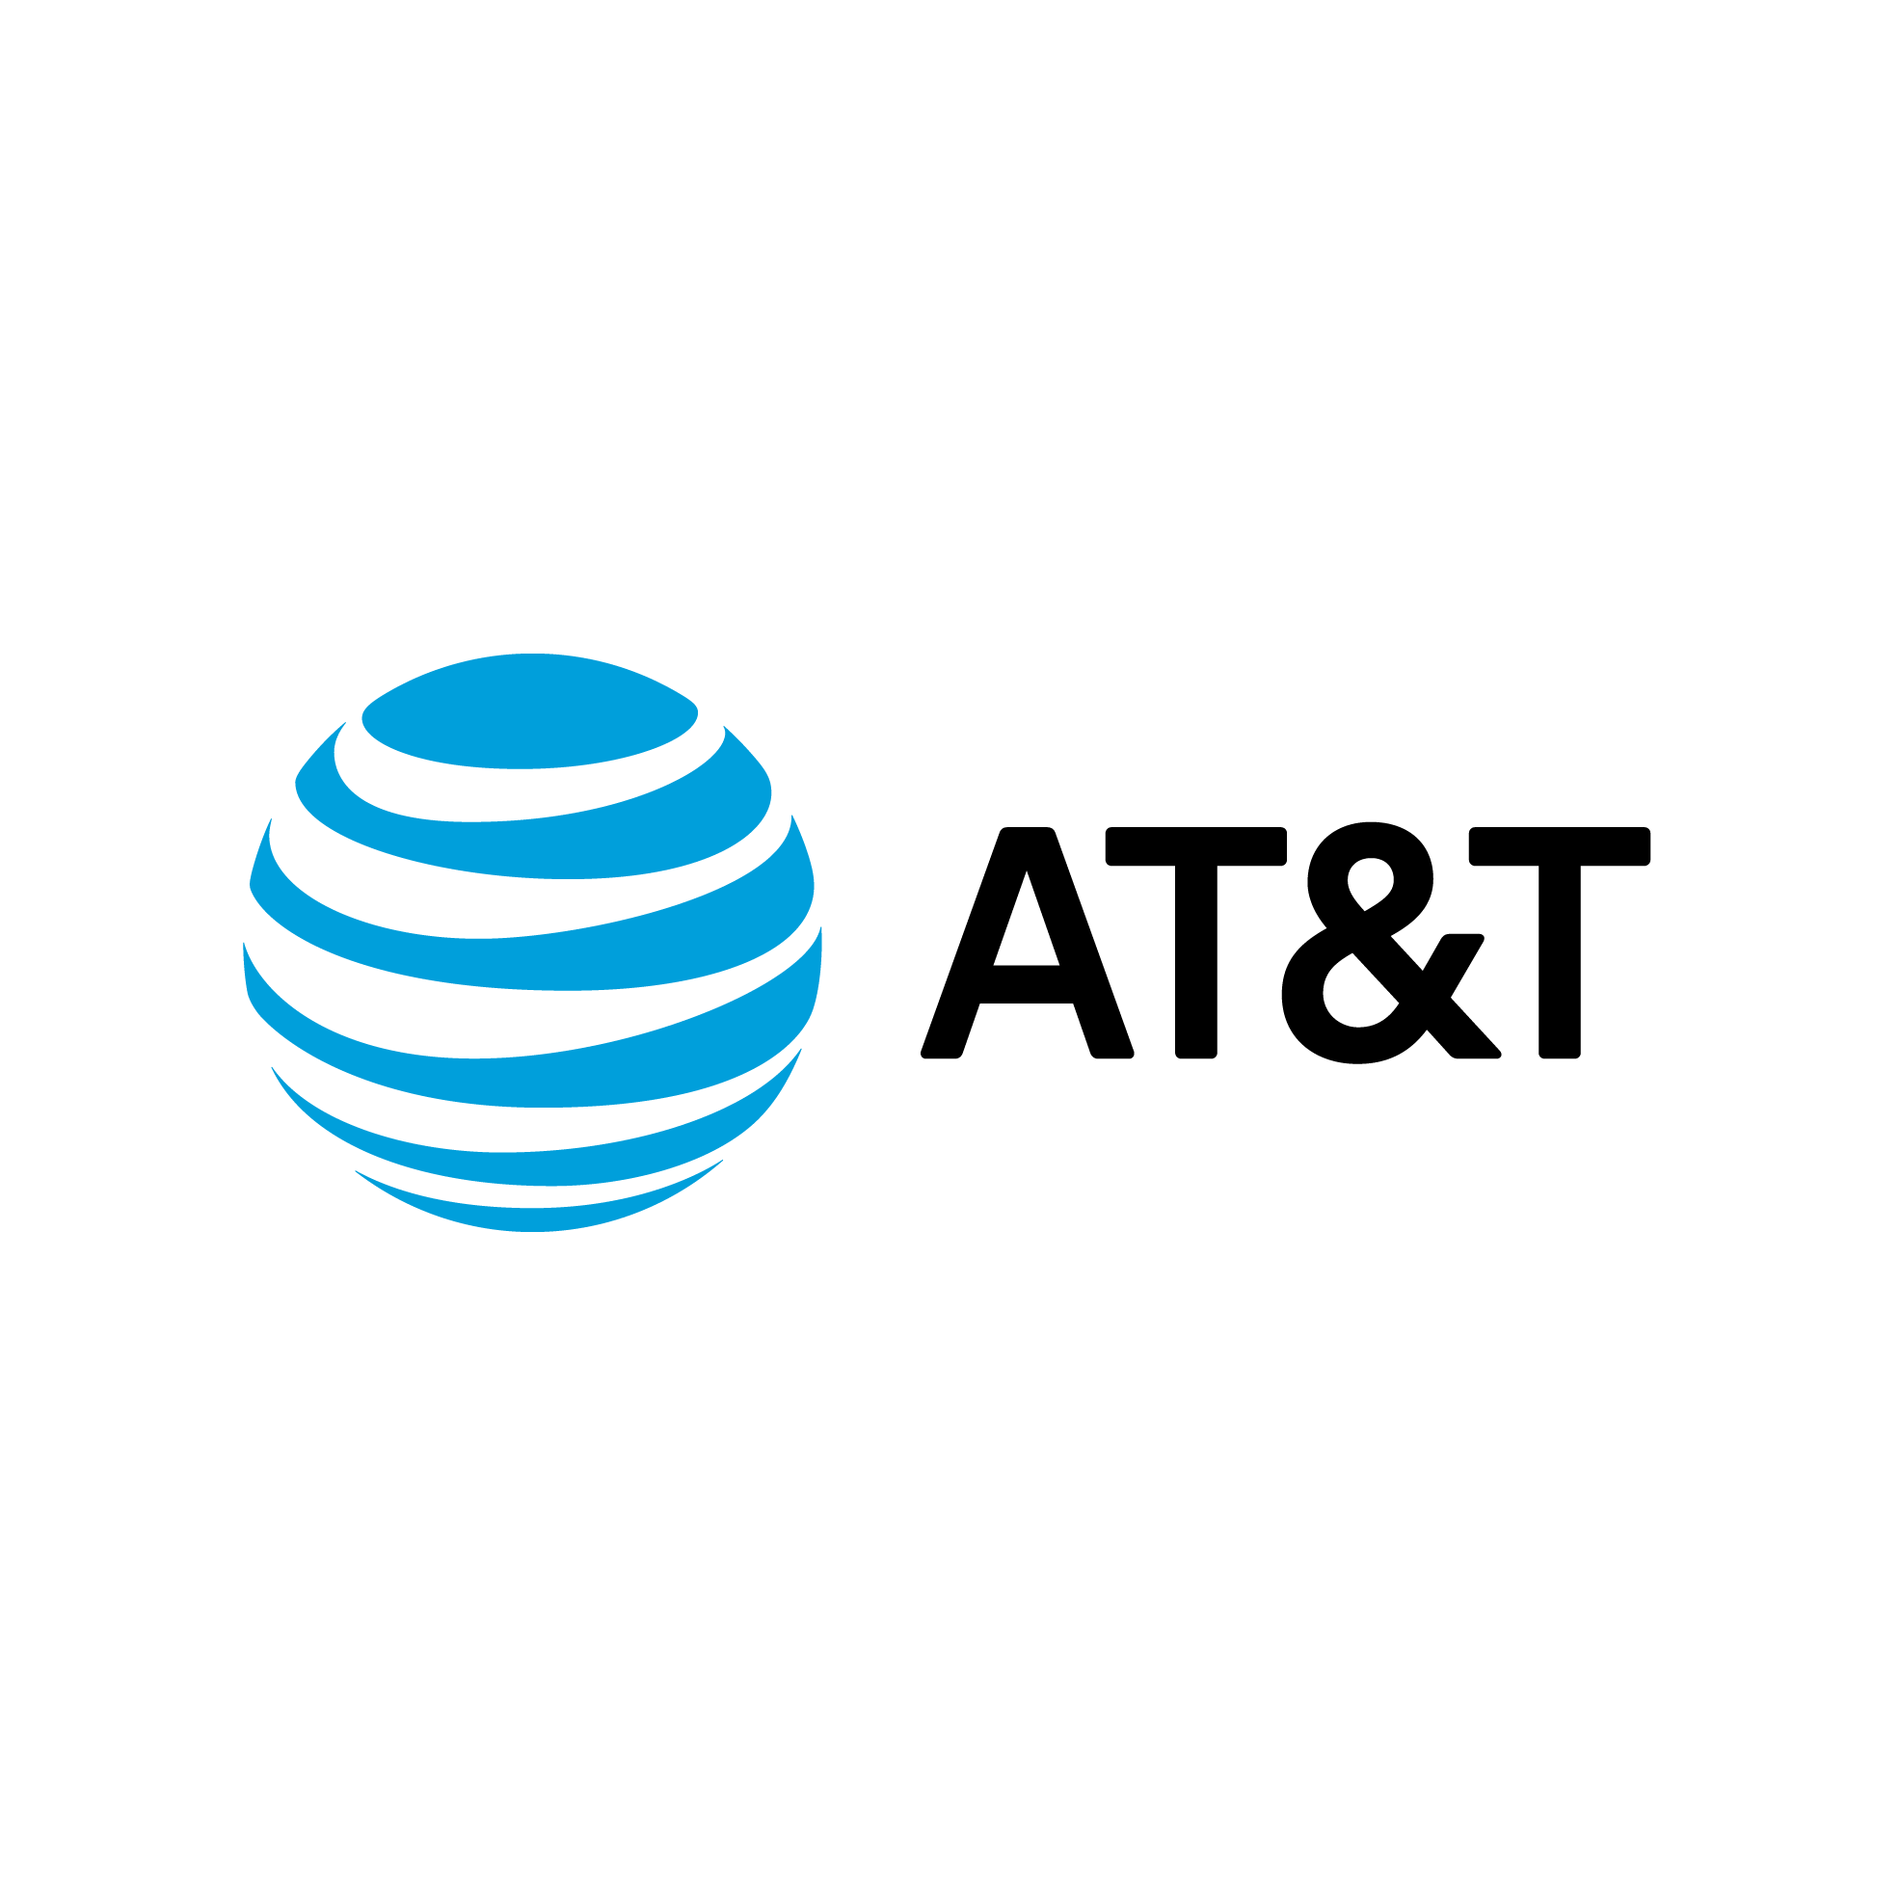 Cell Phone Store in TX San Antonio 78224 AT&T 2310 SW Military Dr #317 (210)451-7970